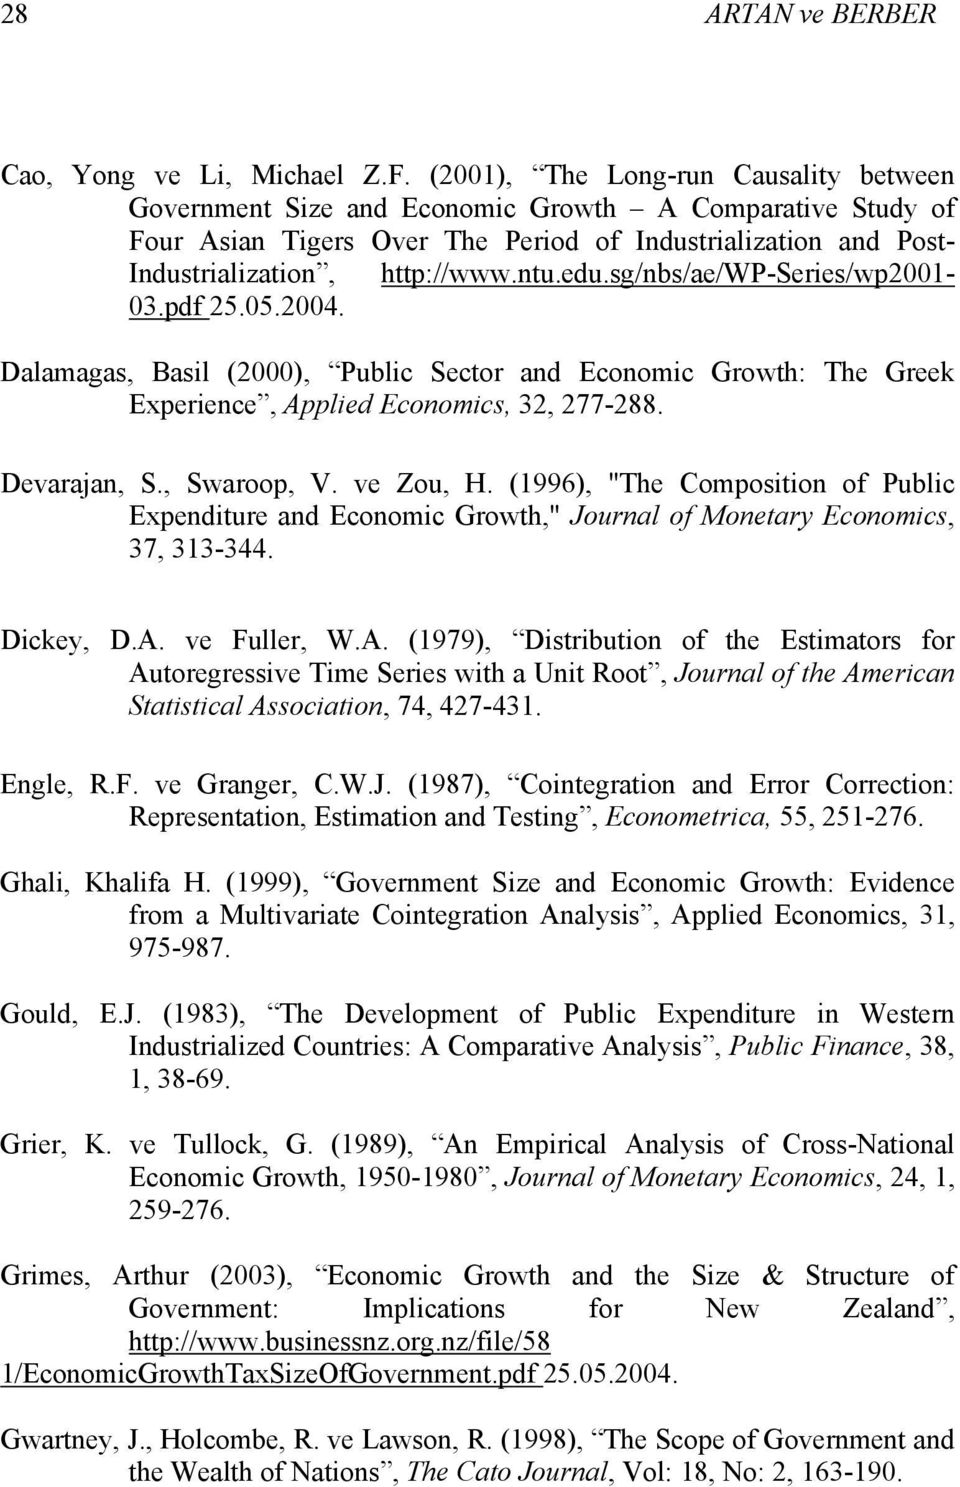 edu.sg/nbs/ae/wp-series/wp2001-03.pdf 25.05.2004. Dalamagas, Basil (2000), Public Sector and Economic Growth: The Greek Experience, Applied Economics, 32, 277-288. Devarajan, S., Swaroop, V.